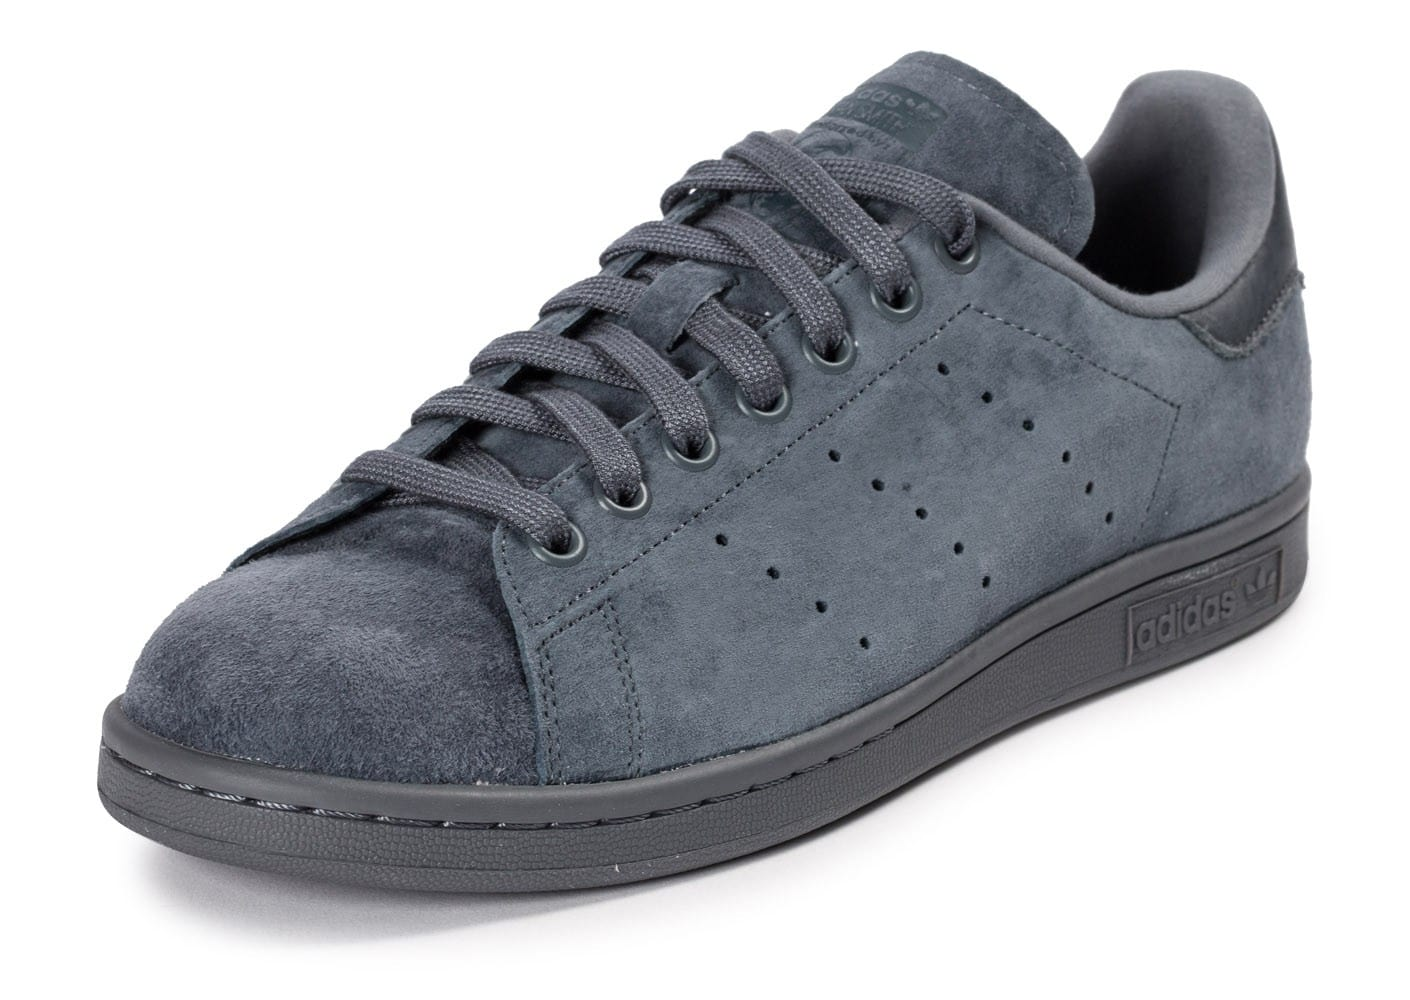 Chaussures Chausport Onyx Homme Baskets Smith Stan Adidas FtSzxq1